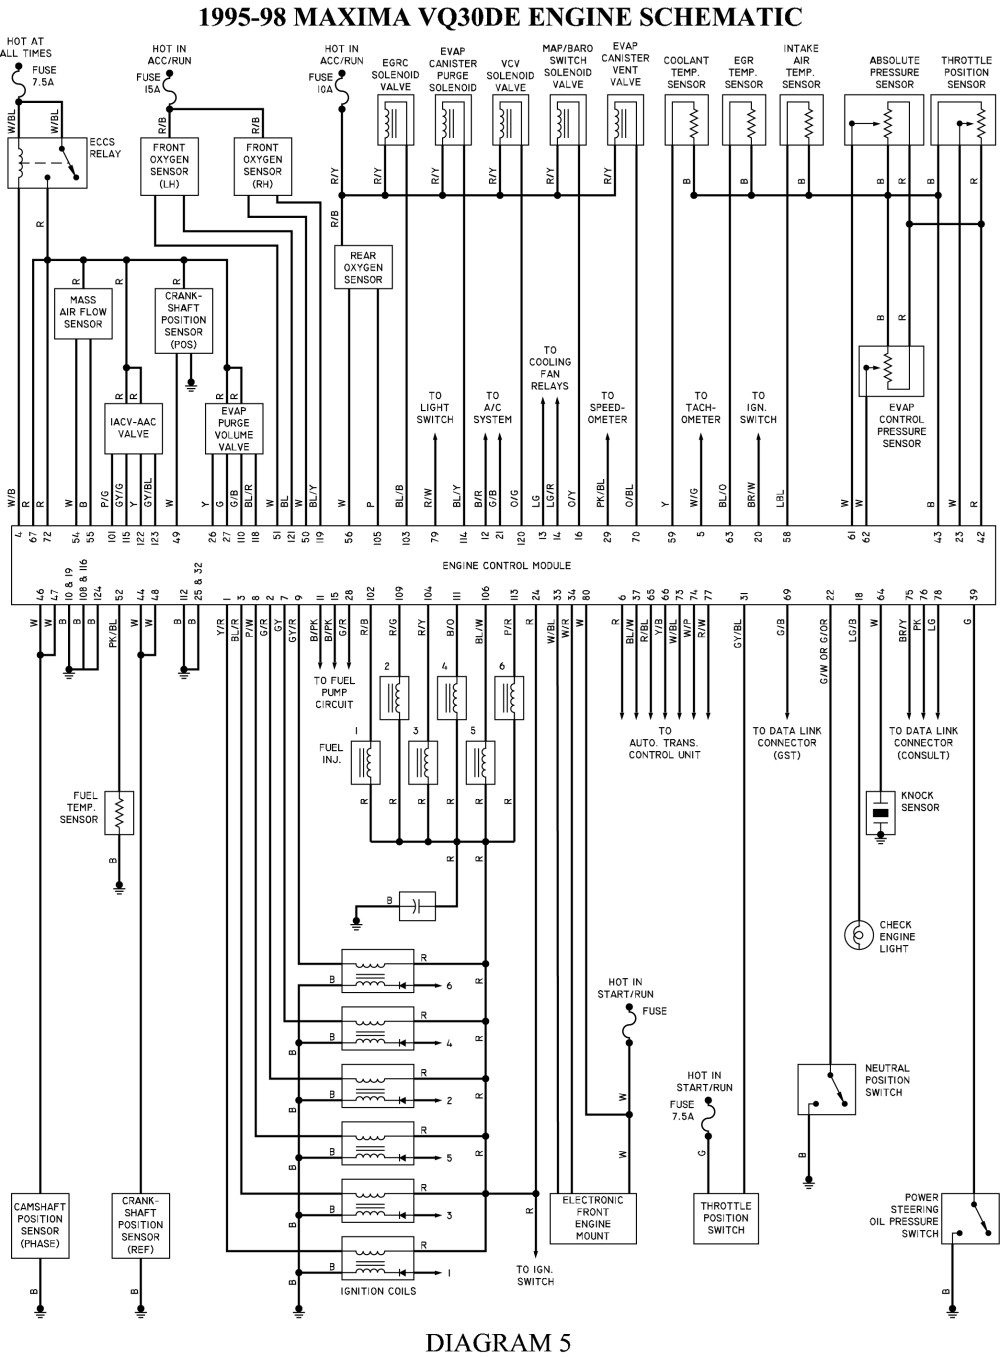 1998 Nissan Pathfinder Stereo Wiring Diagram Schematics 2010 Frontier V6 Starter Well Detailed Rh Flyvpn Co Radio